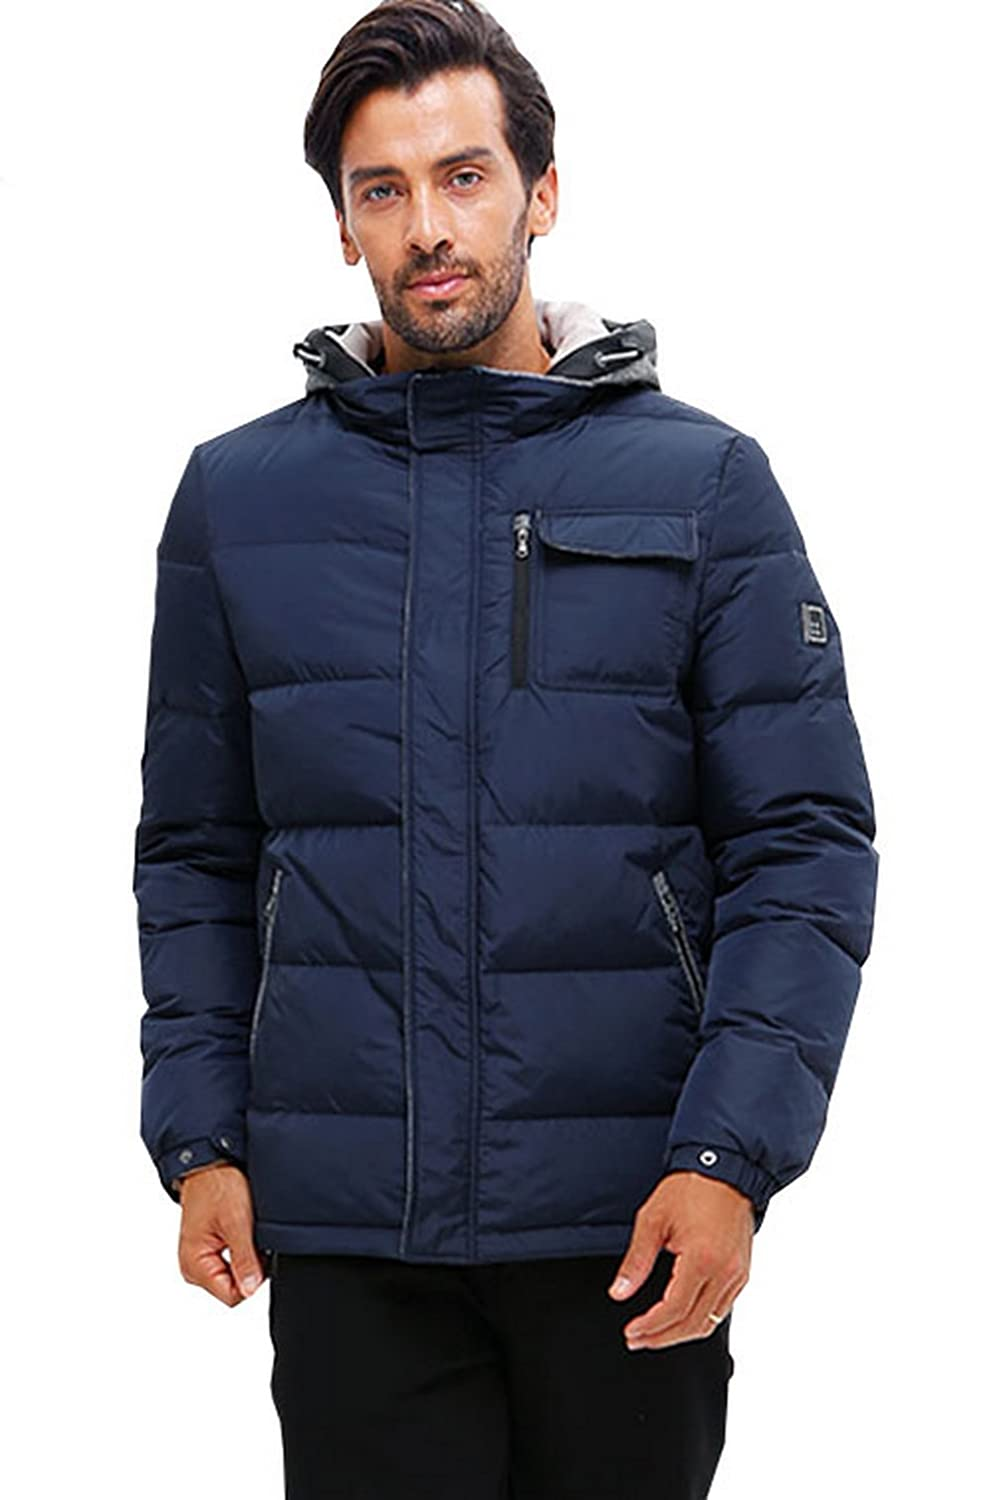 iKRR Men's Down Jacket with Hood Warm for Outdoor Winter